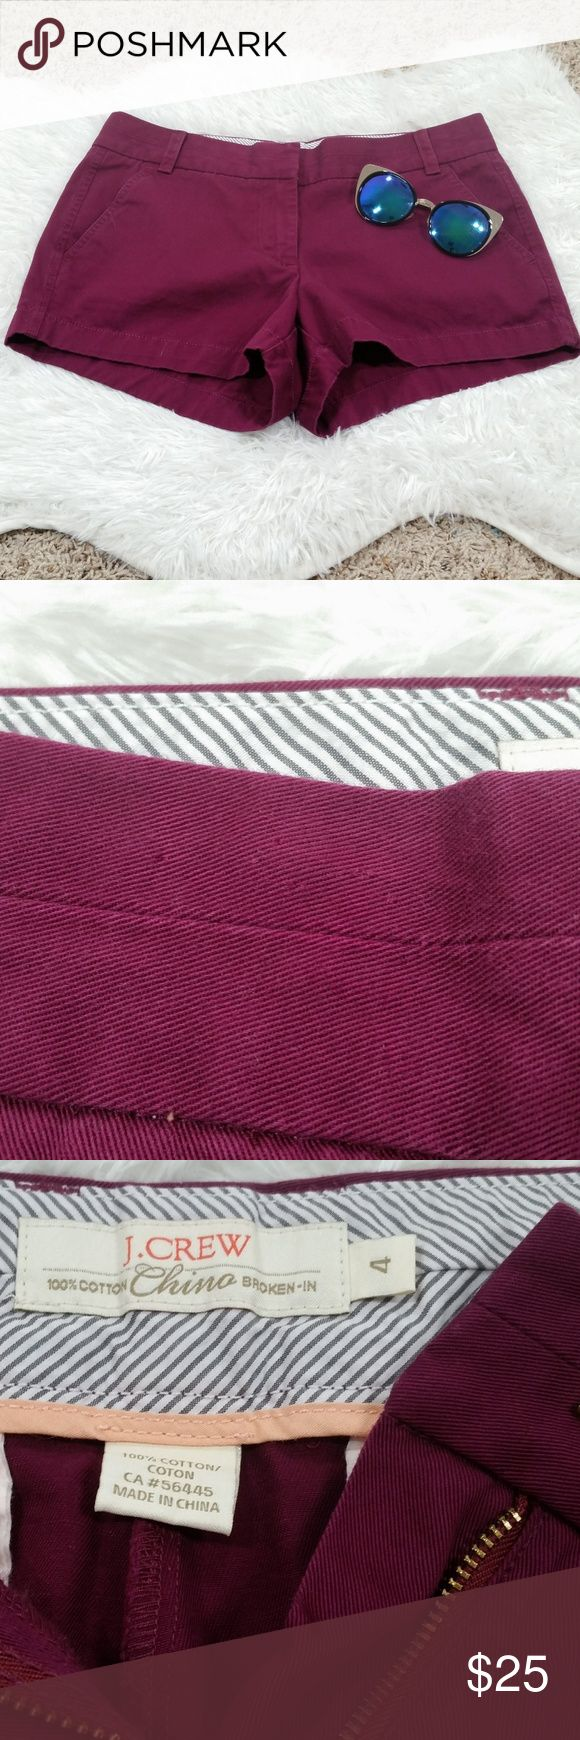 """J.Crew 3"""" Stretch Chino Maroon Shorts #340 Hi Guys! I'm Selling these J.Crew Chino Shorts In Great Condition. these would be perfect for spring and summer with a button down and some espadrilles! Waist 16"""". Hem 11.5"""". Front Rise 8.5"""". Back Rise 14.5"""". J. Crew Shorts"""